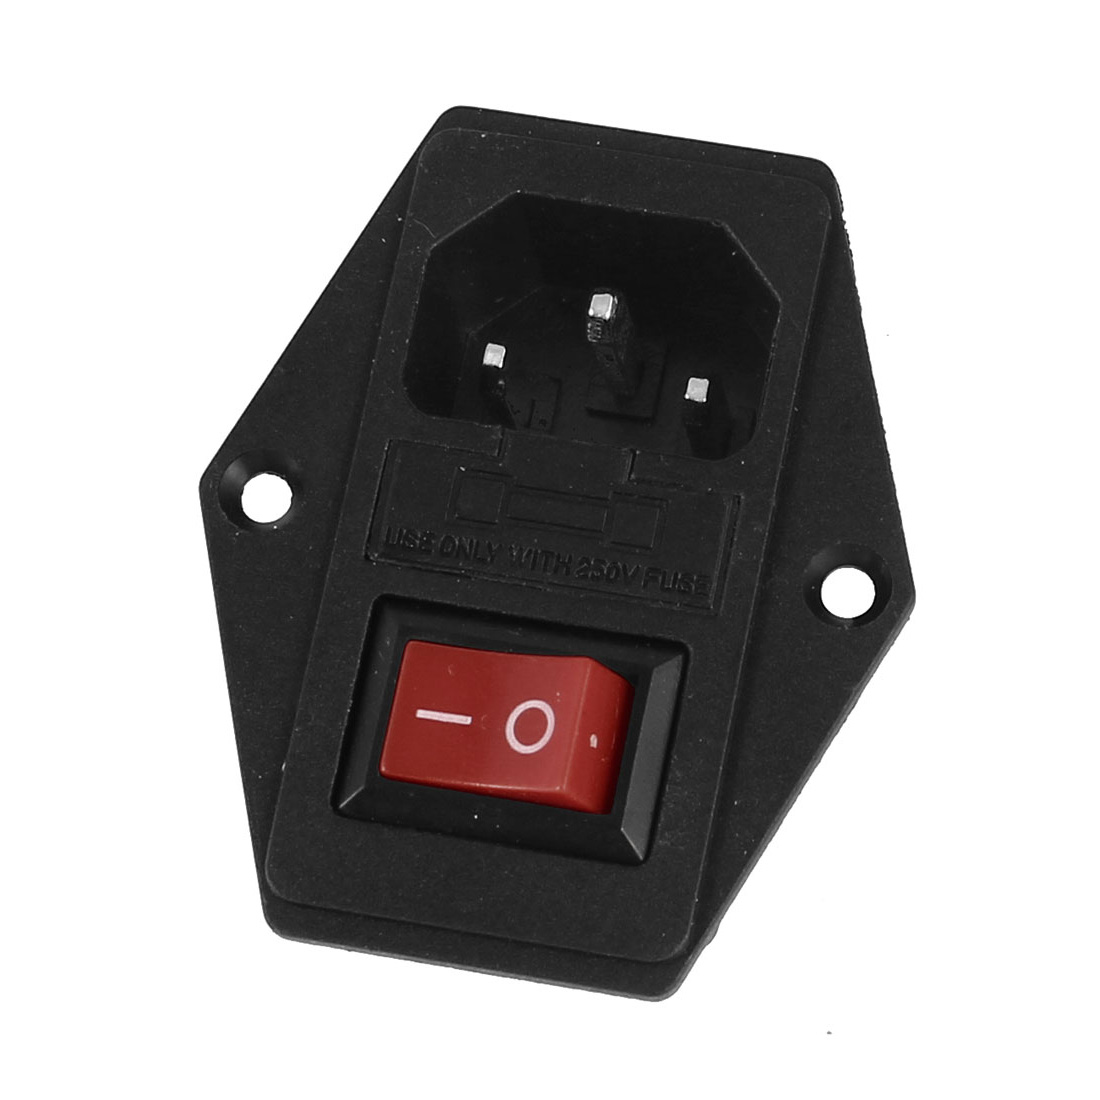 KCD1-102 SPDT ON/OFF Rocker Switch 250V 10A w Fuse Holder w IEC320 C14 Power Inlet